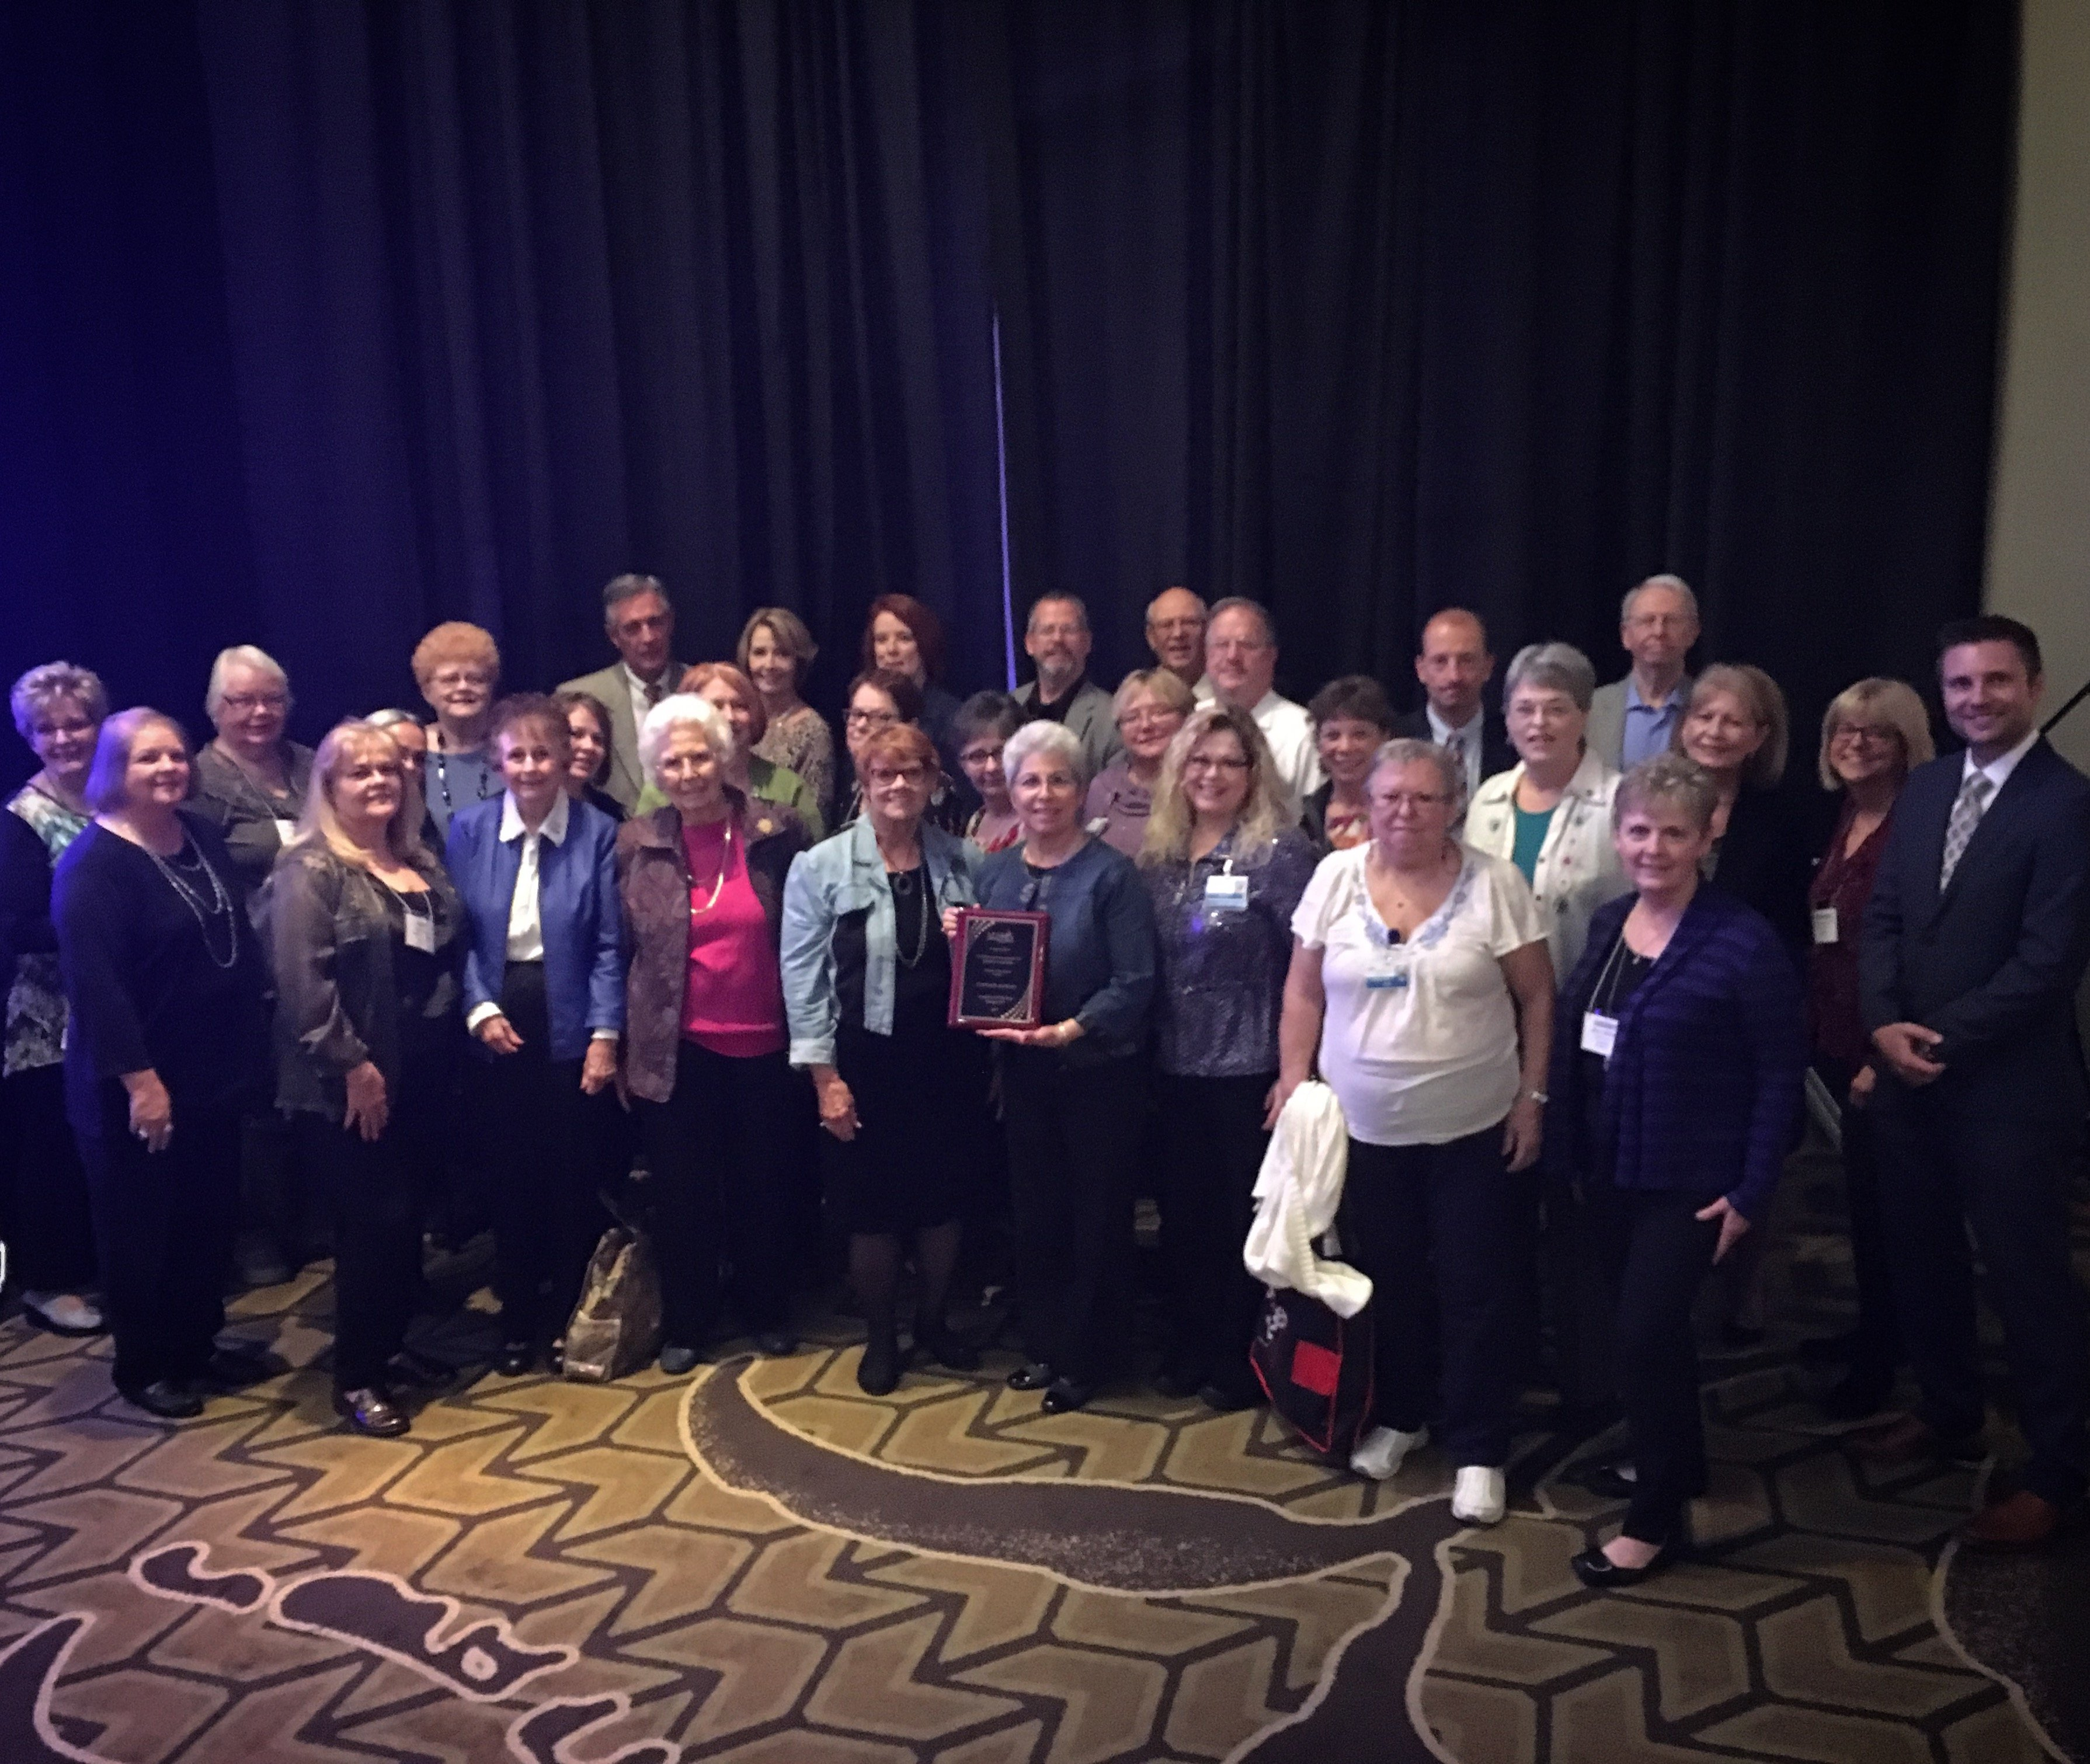 A group of CoxHealth Auxiliary members pose at a convention.